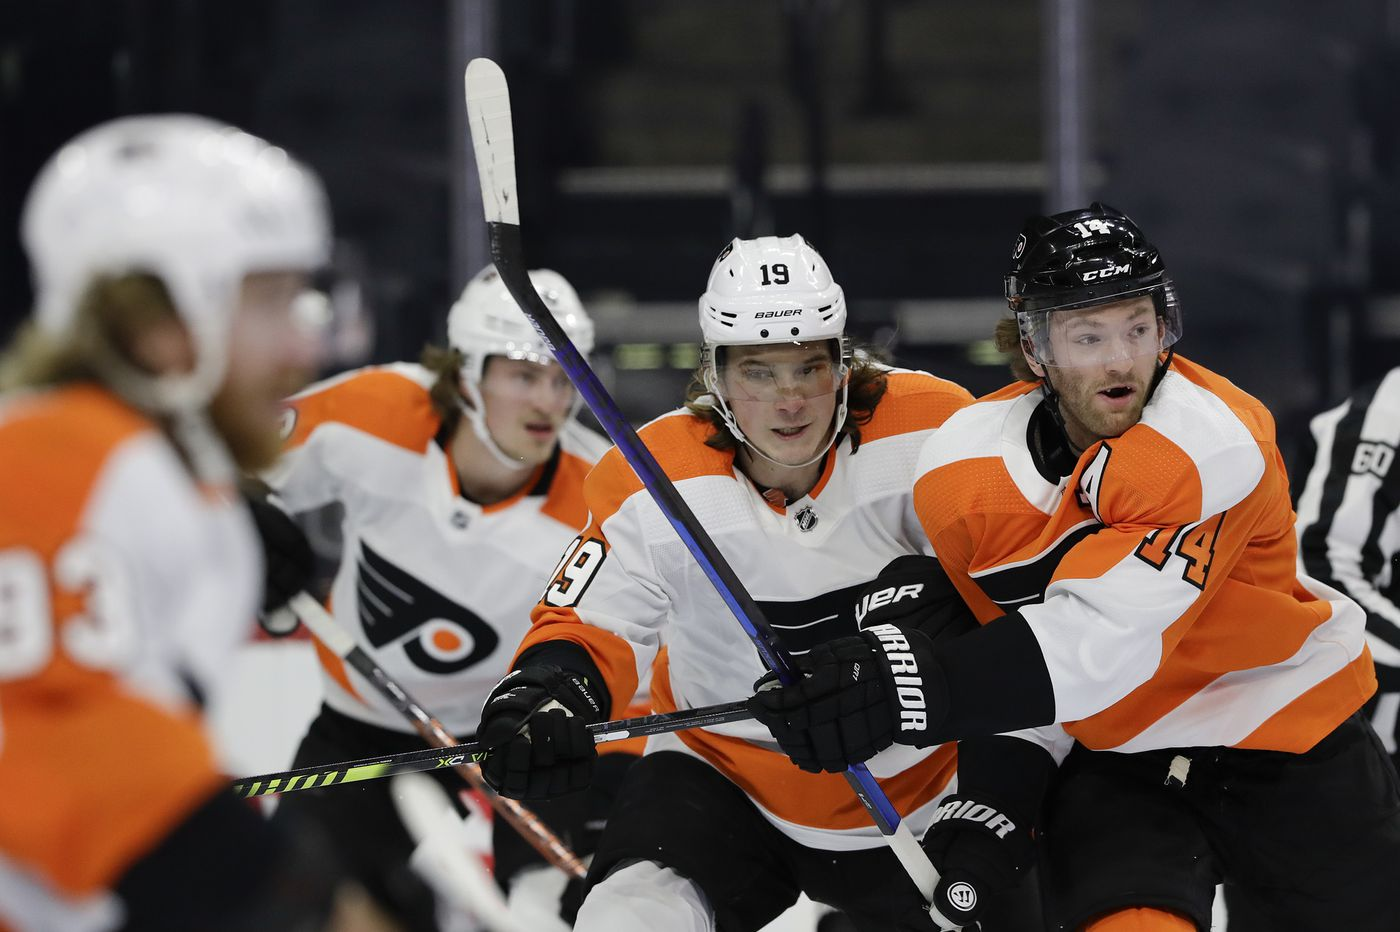 Nolan Patrick shines in scrimmage as Flyers play tune-up for Wednesday's opener